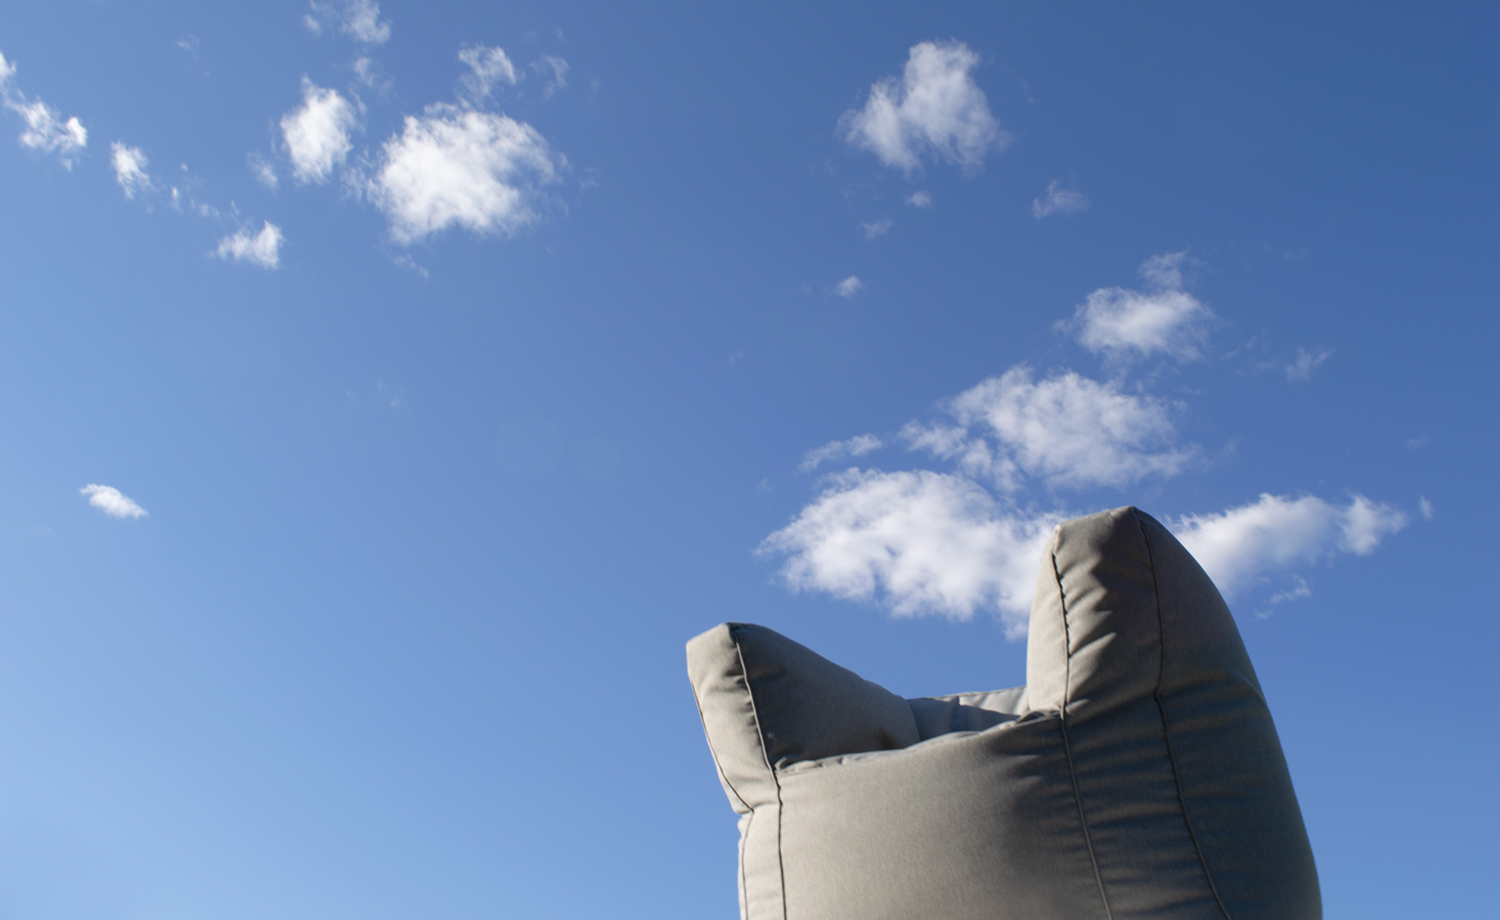 Buying sofas online, easy as one-two-three, slide 3